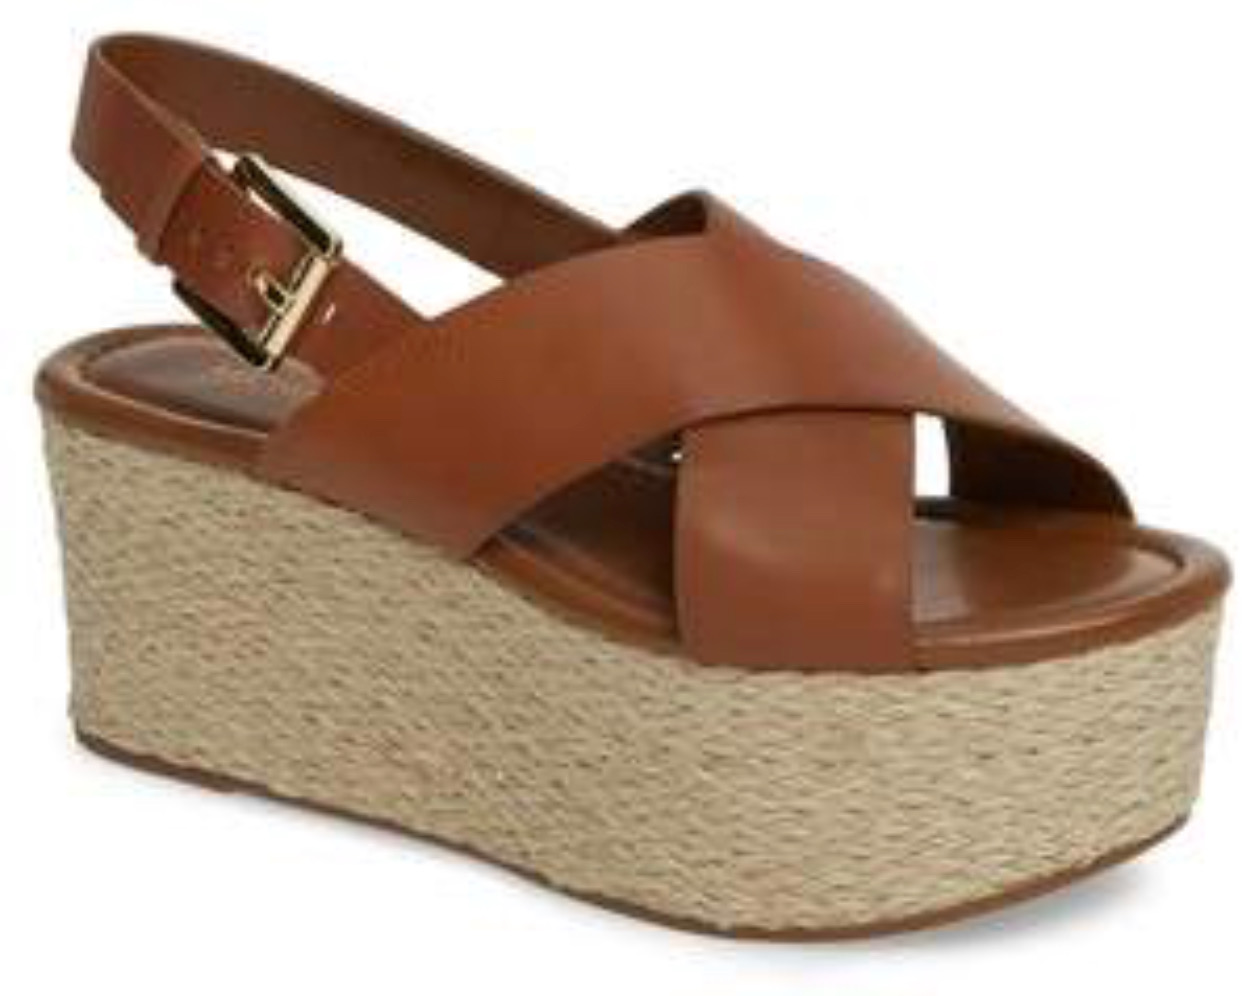 b13bcdf0ceee0 These Michael Kors wedges are almost like the ones I posted above but they  are a little less expensive and they have the cross strap design.